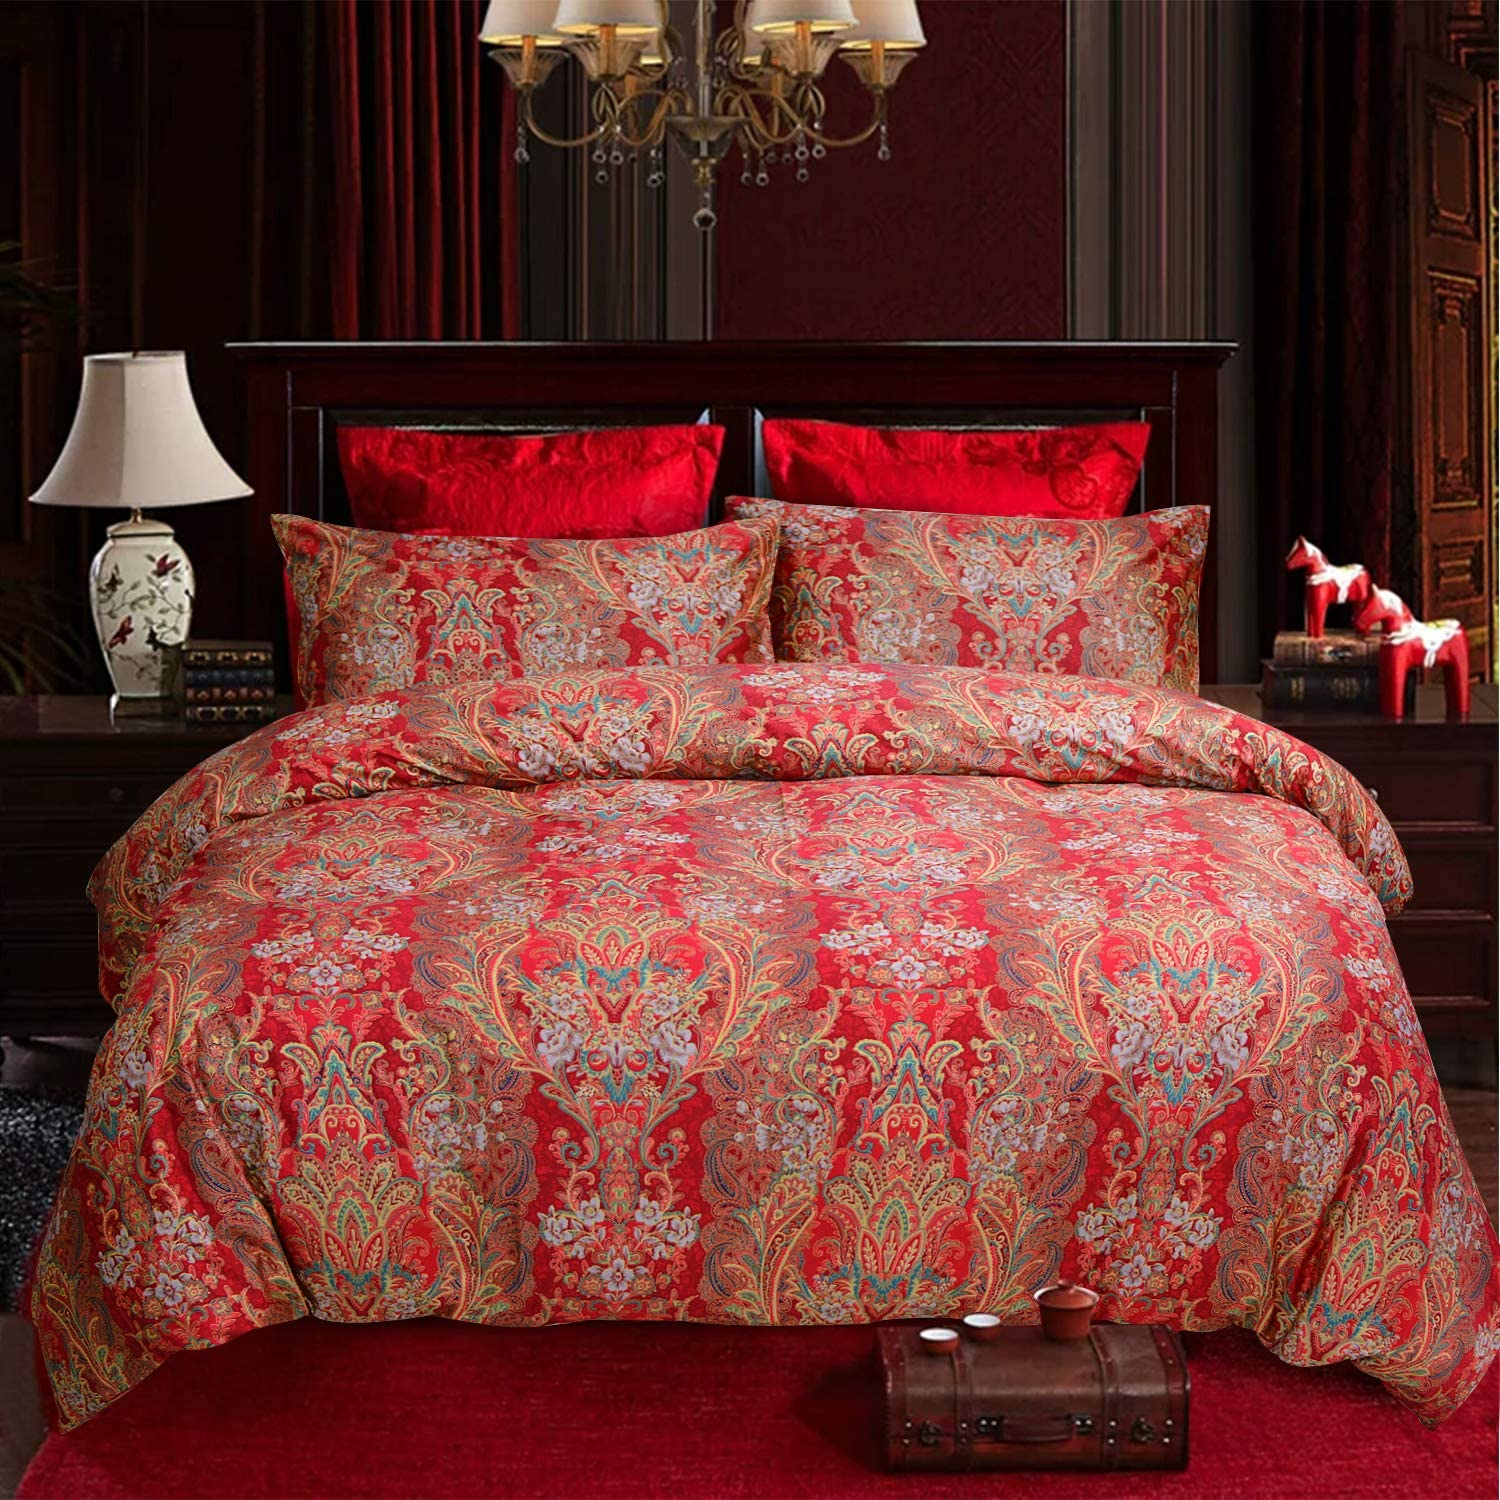 Boho Luxury Bohemian Retro Boho Bedding King 3 Pcs 100% Egyptian Cotton Paisley Damask Pattern Duvet Covers red and Gold 1000 Thread Count Super Soft Hypoallergenic